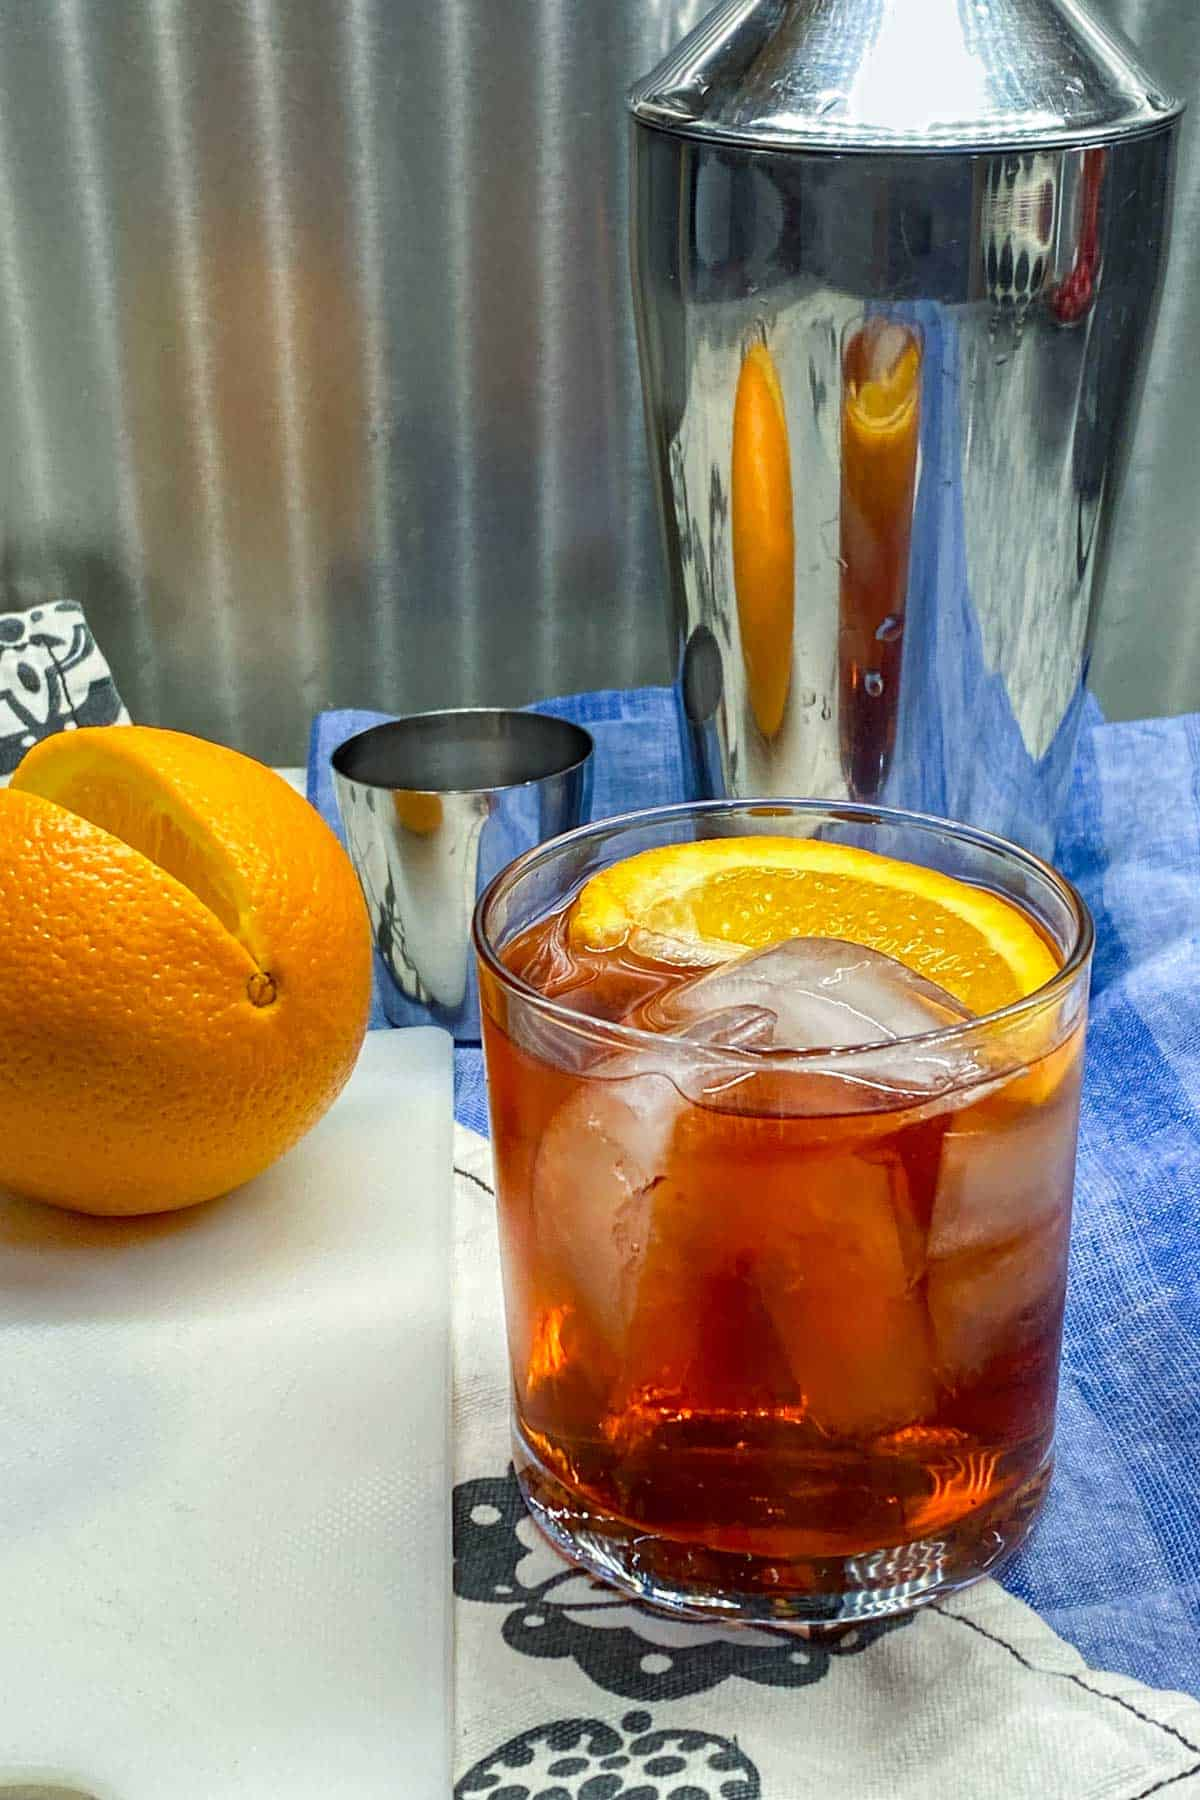 negroni cocktail in the foreground with an orange slice as a garnish, an orange and a cocktail shaker in the background